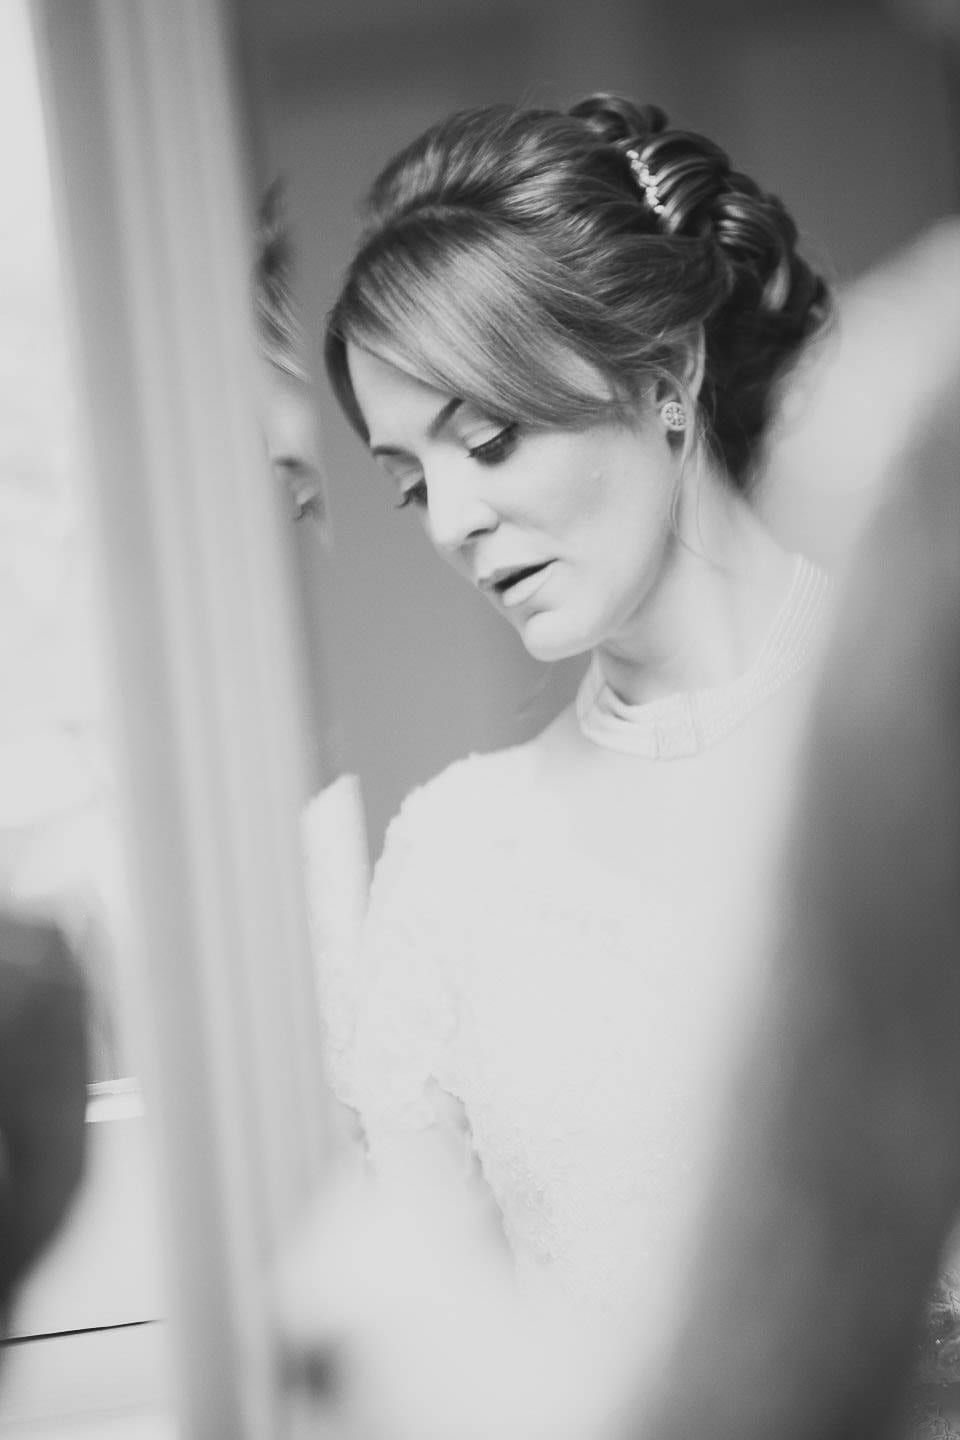 Black and white reflection of the bride in the mirror at Bath Spa Hotel